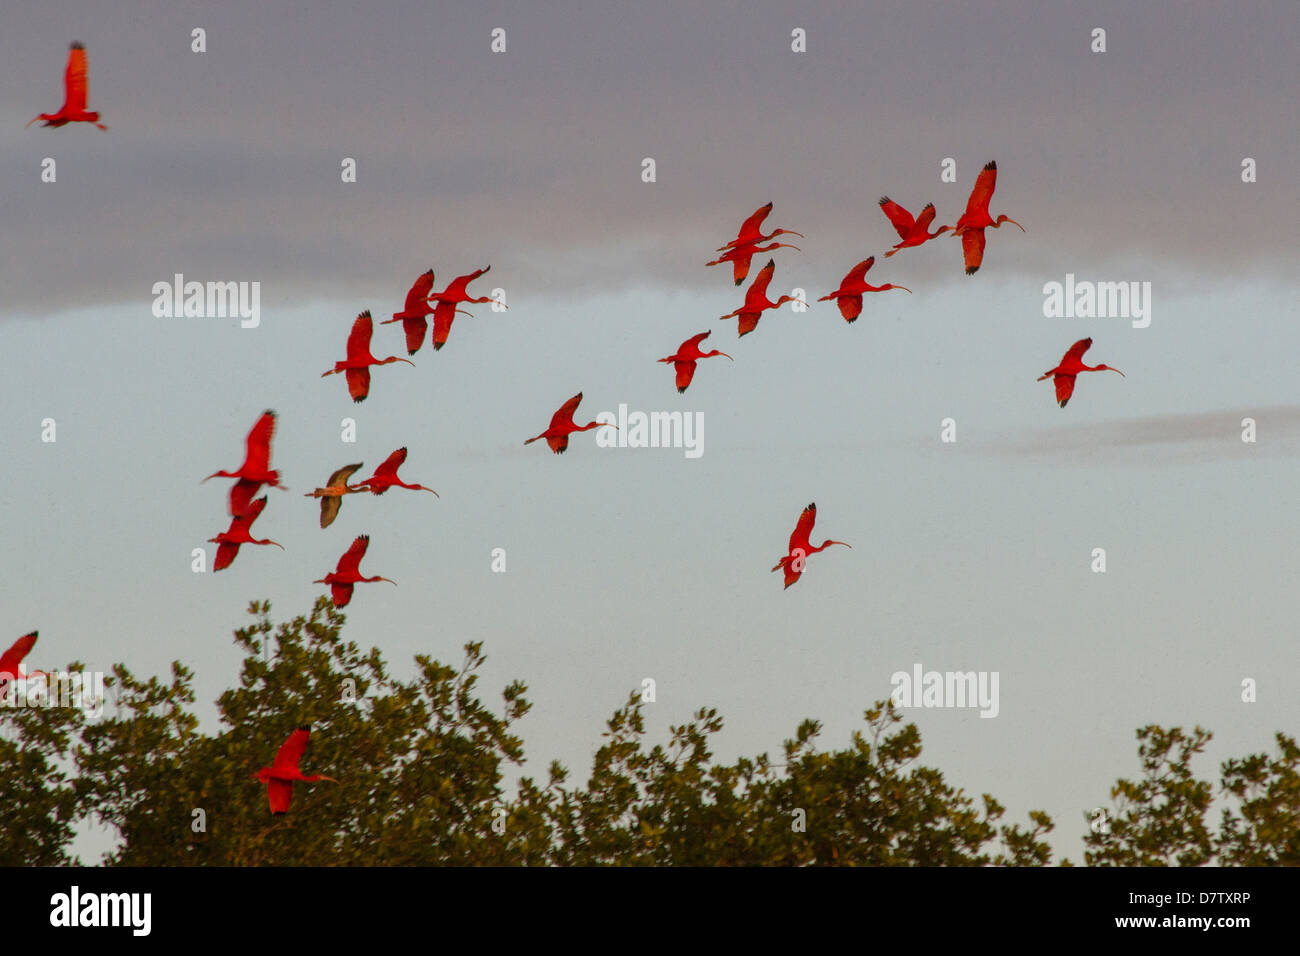 Scarlet ibis return to roost at dusk, Caroni Swamp, Port-of-Spain, Trinidad, West Indies, Caribbean - Stock Image